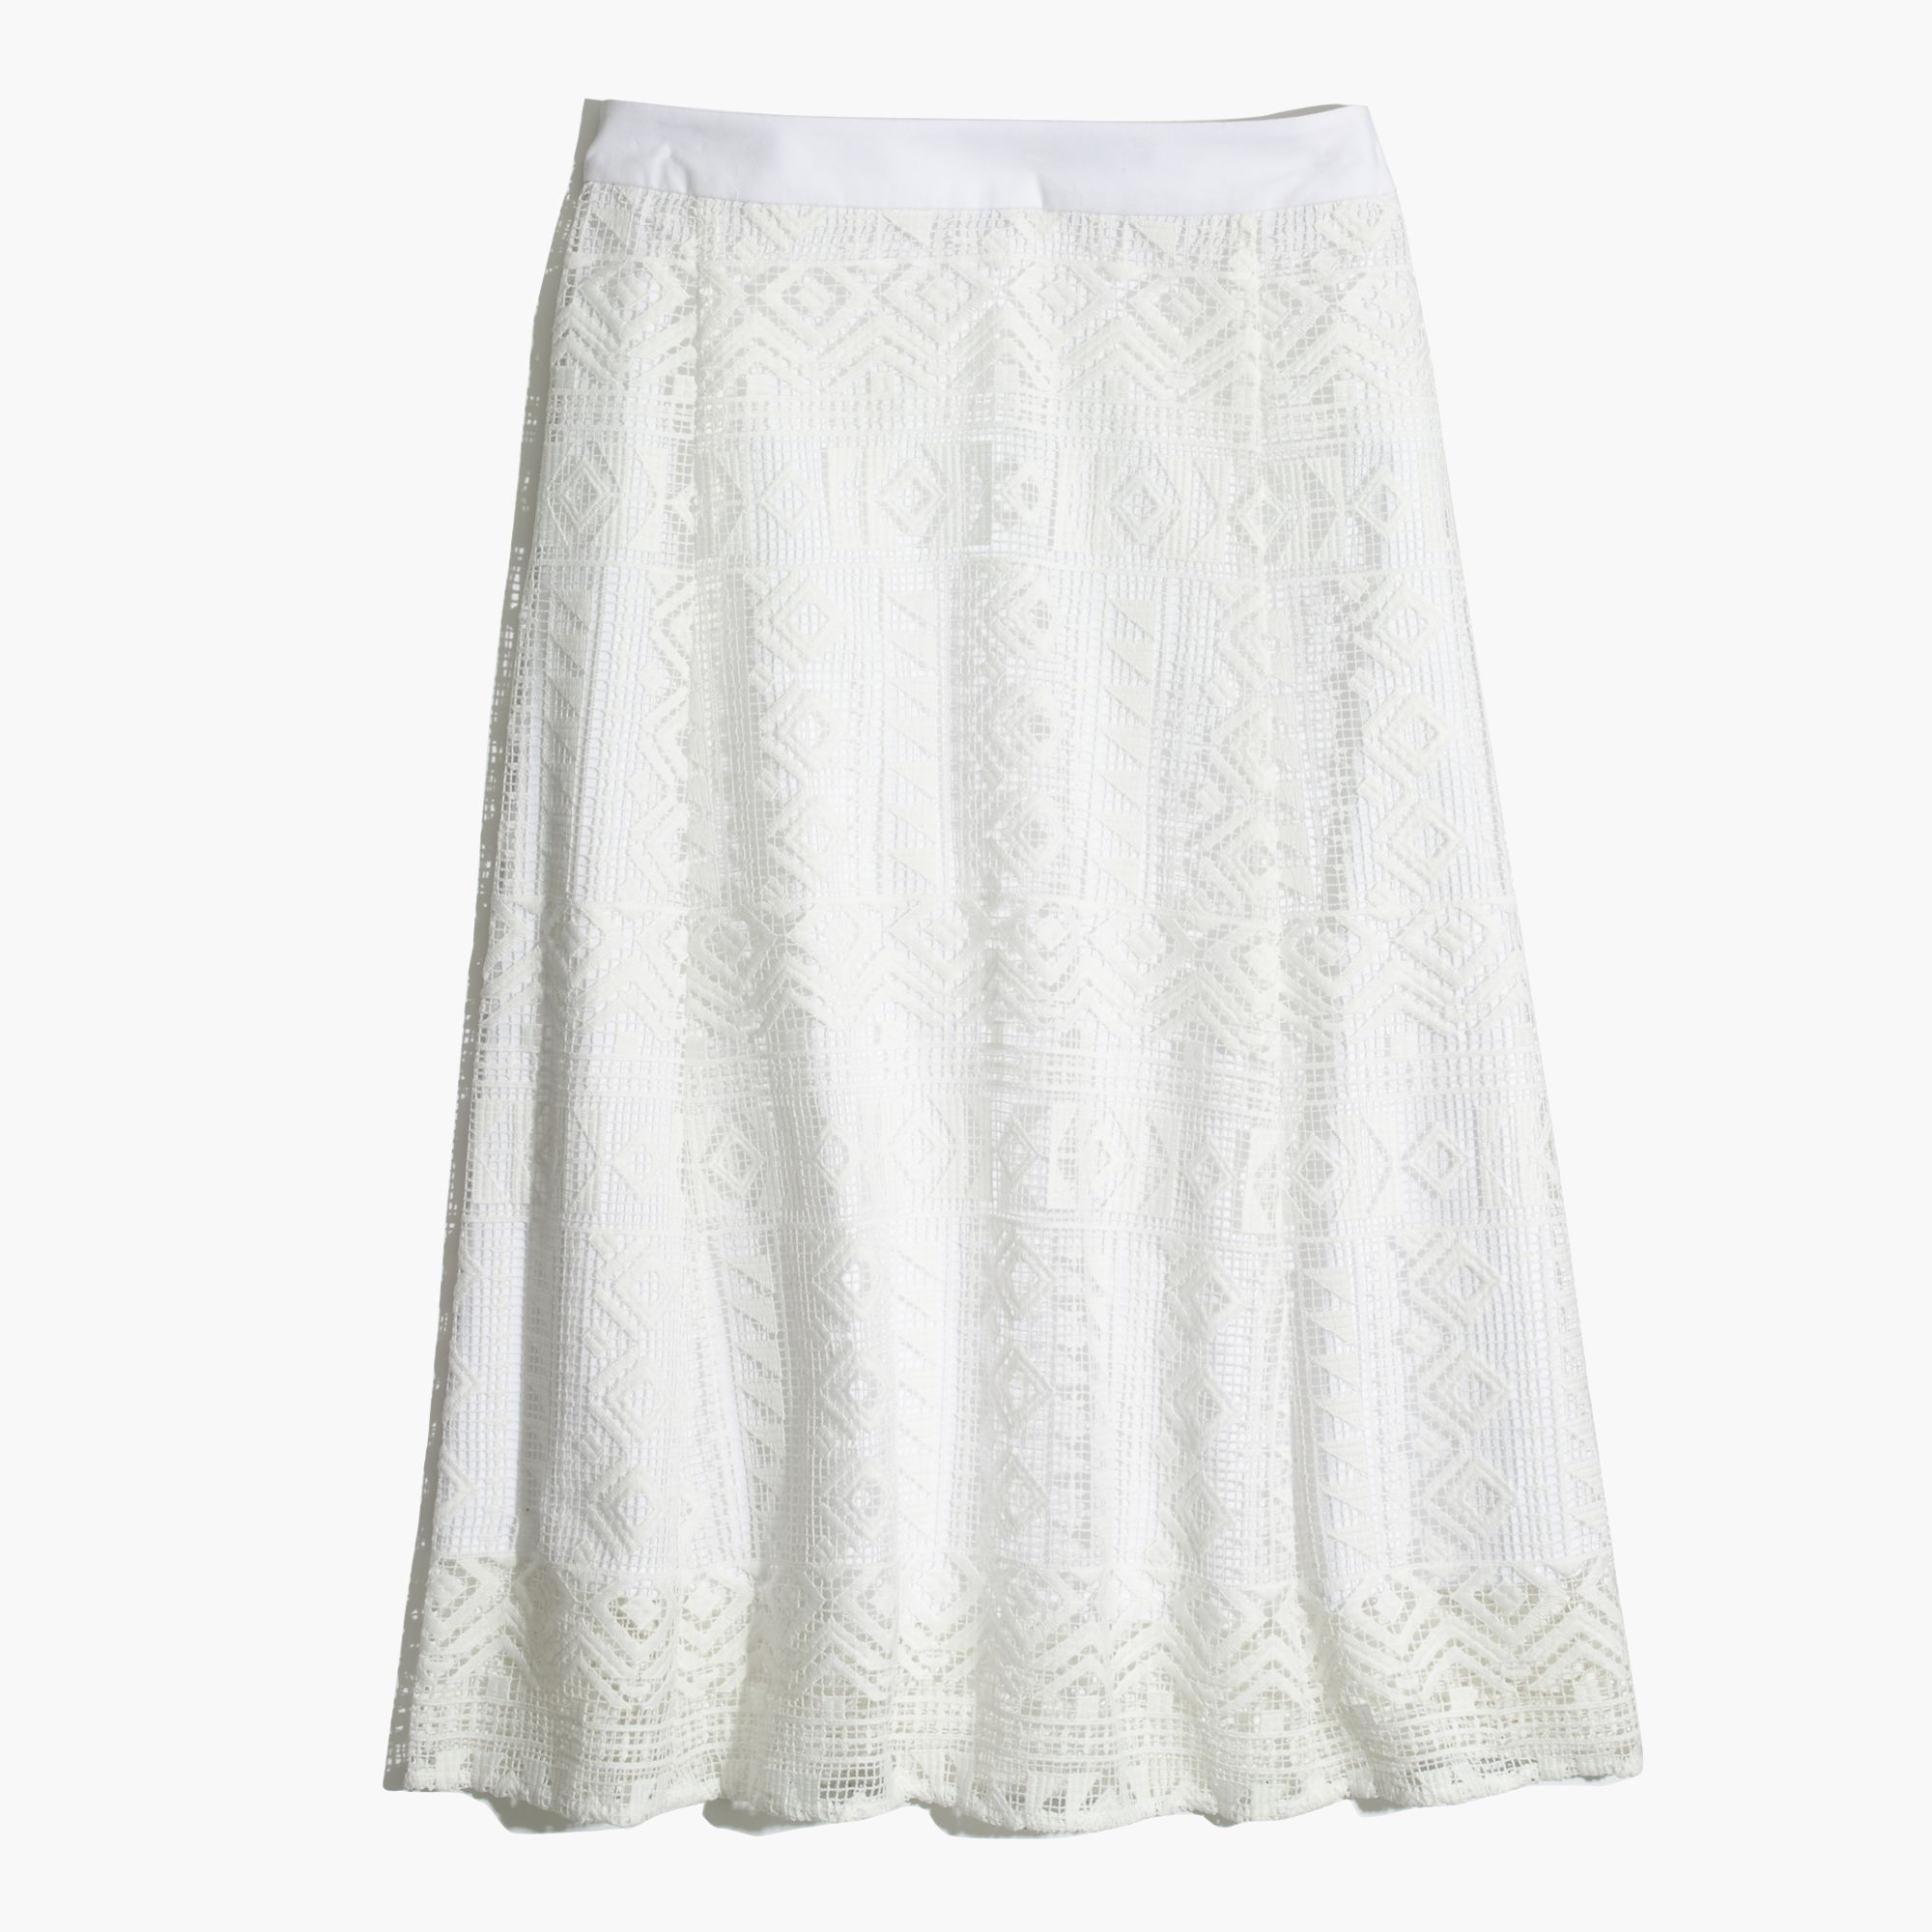 Eyelet Bedskirt Ruffle from Collections Etc